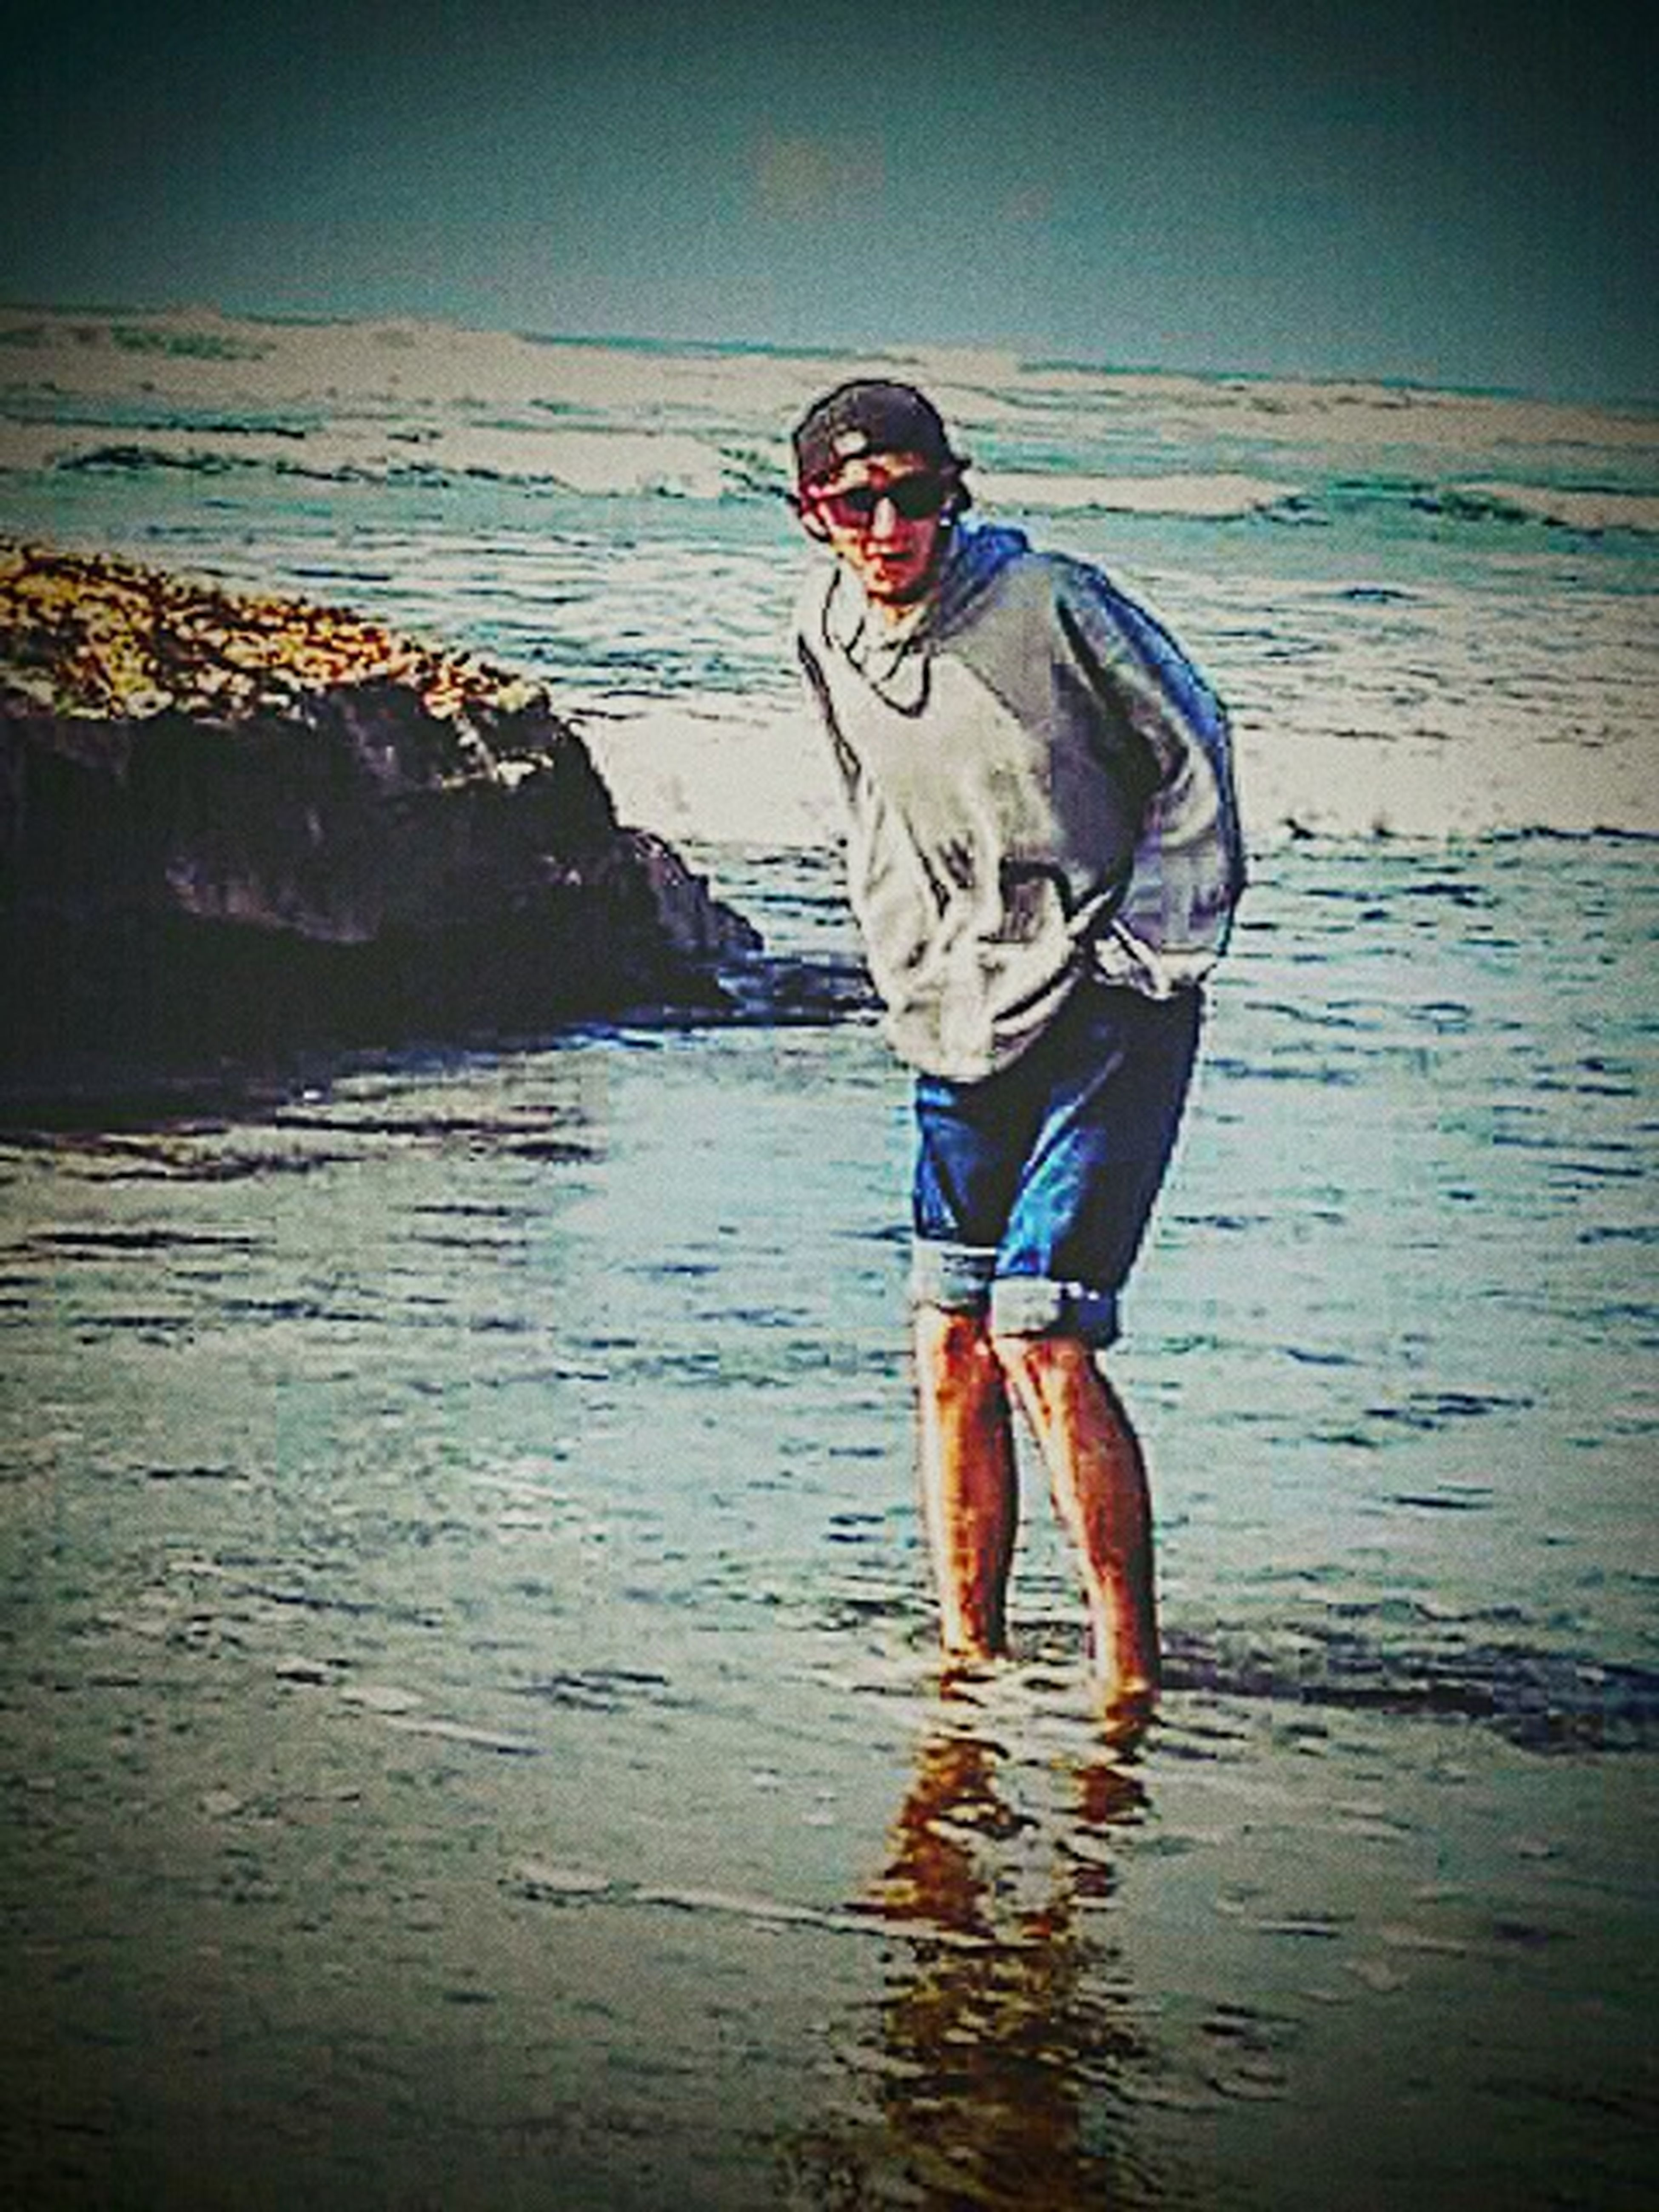 Hanging Out Taking Photos Check This Out Enjoying Life Timeflies Silly Unconditional Love Cold Water Pacific Ocean Beach Bums For Life  Cold! Having Fun :) Freezing Cold Beauty In All Things My Baby Boy Just Turned 20